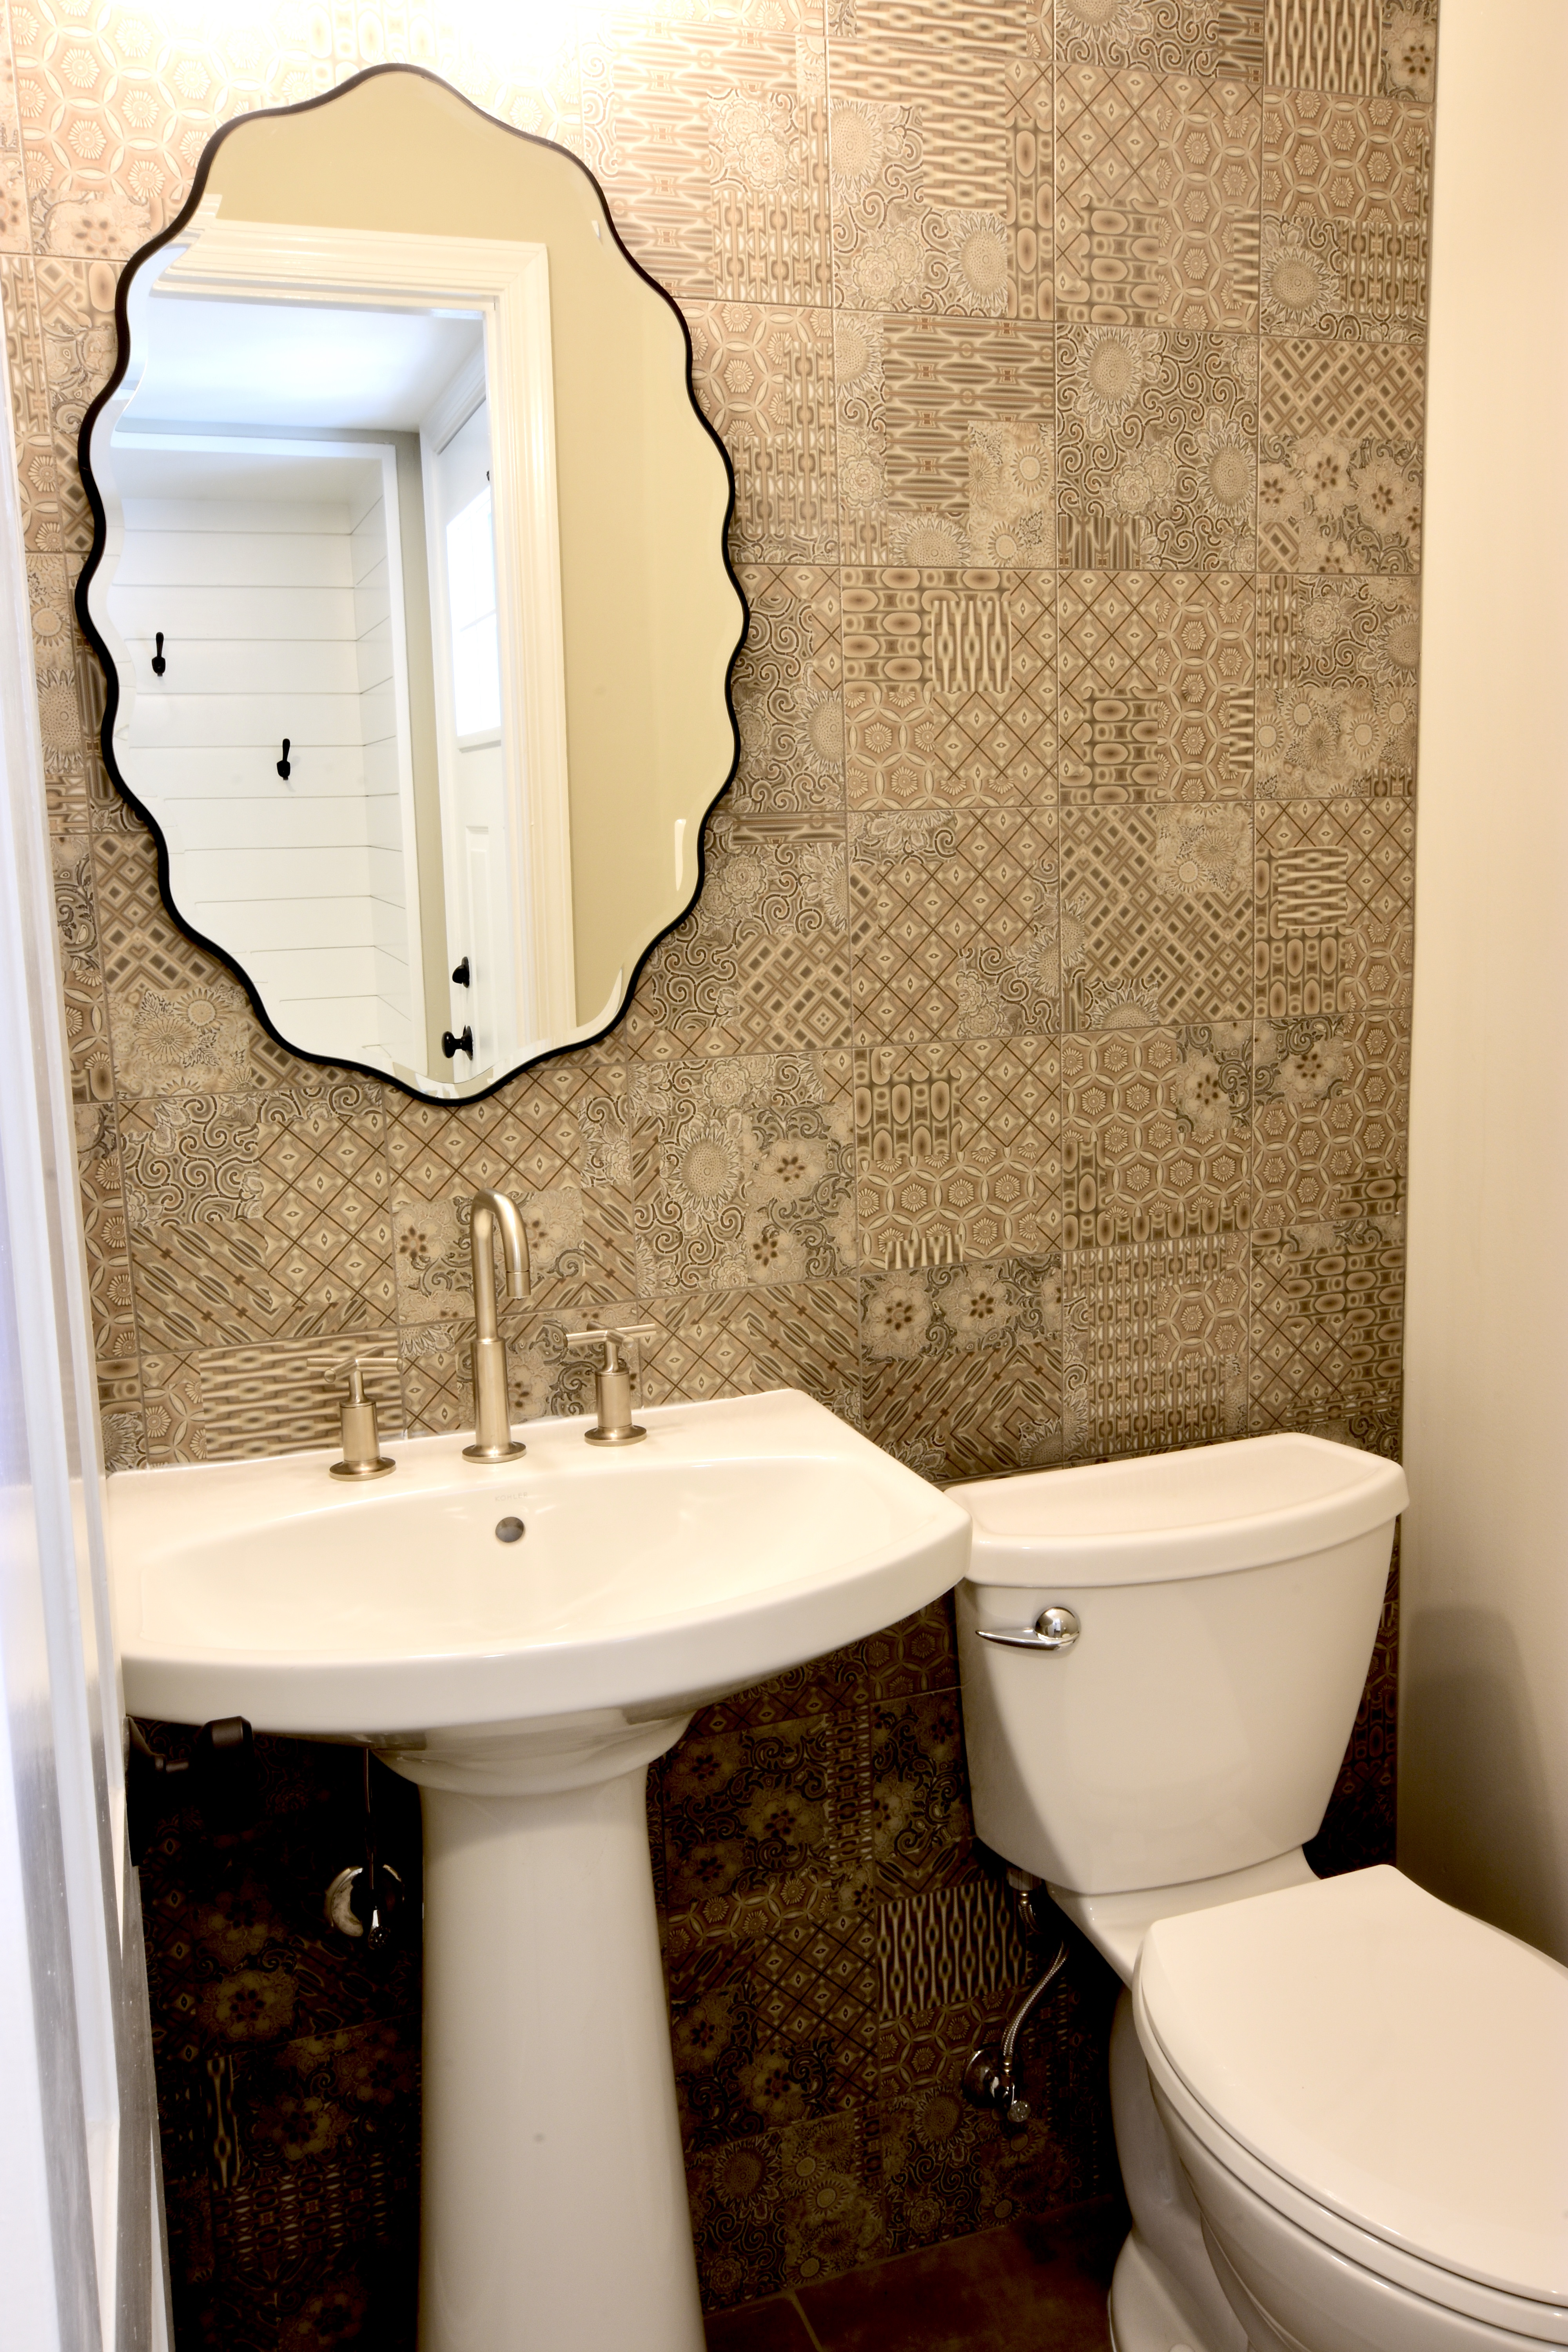 Before/After :: A Small Powder Room Packs A Punch